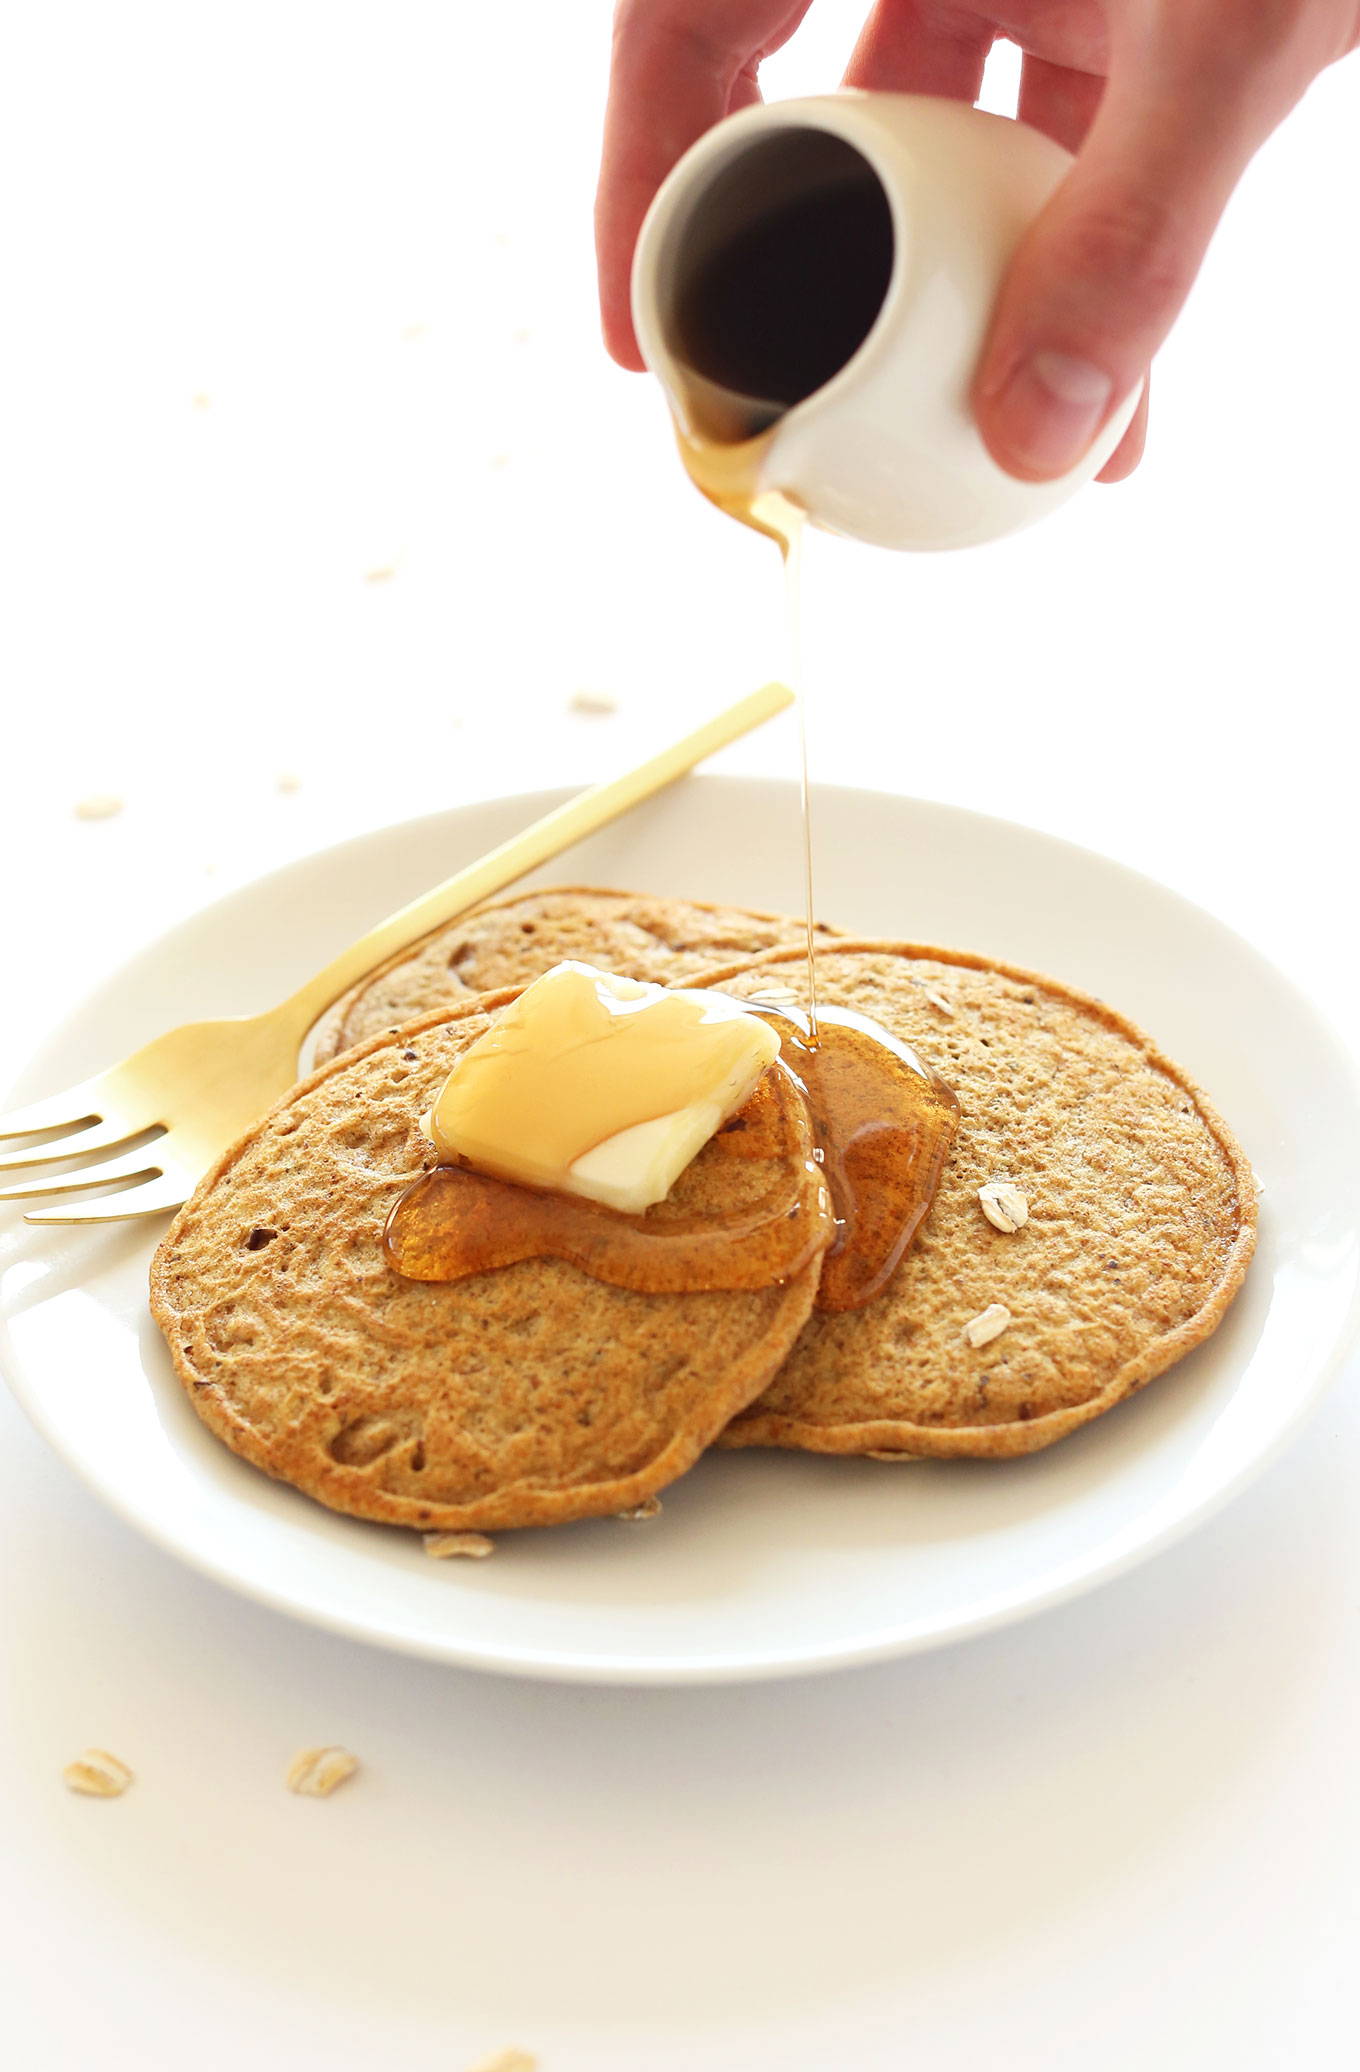 Pouring syrup onto Whole Grain Vegan Pancakes made with spelt flour